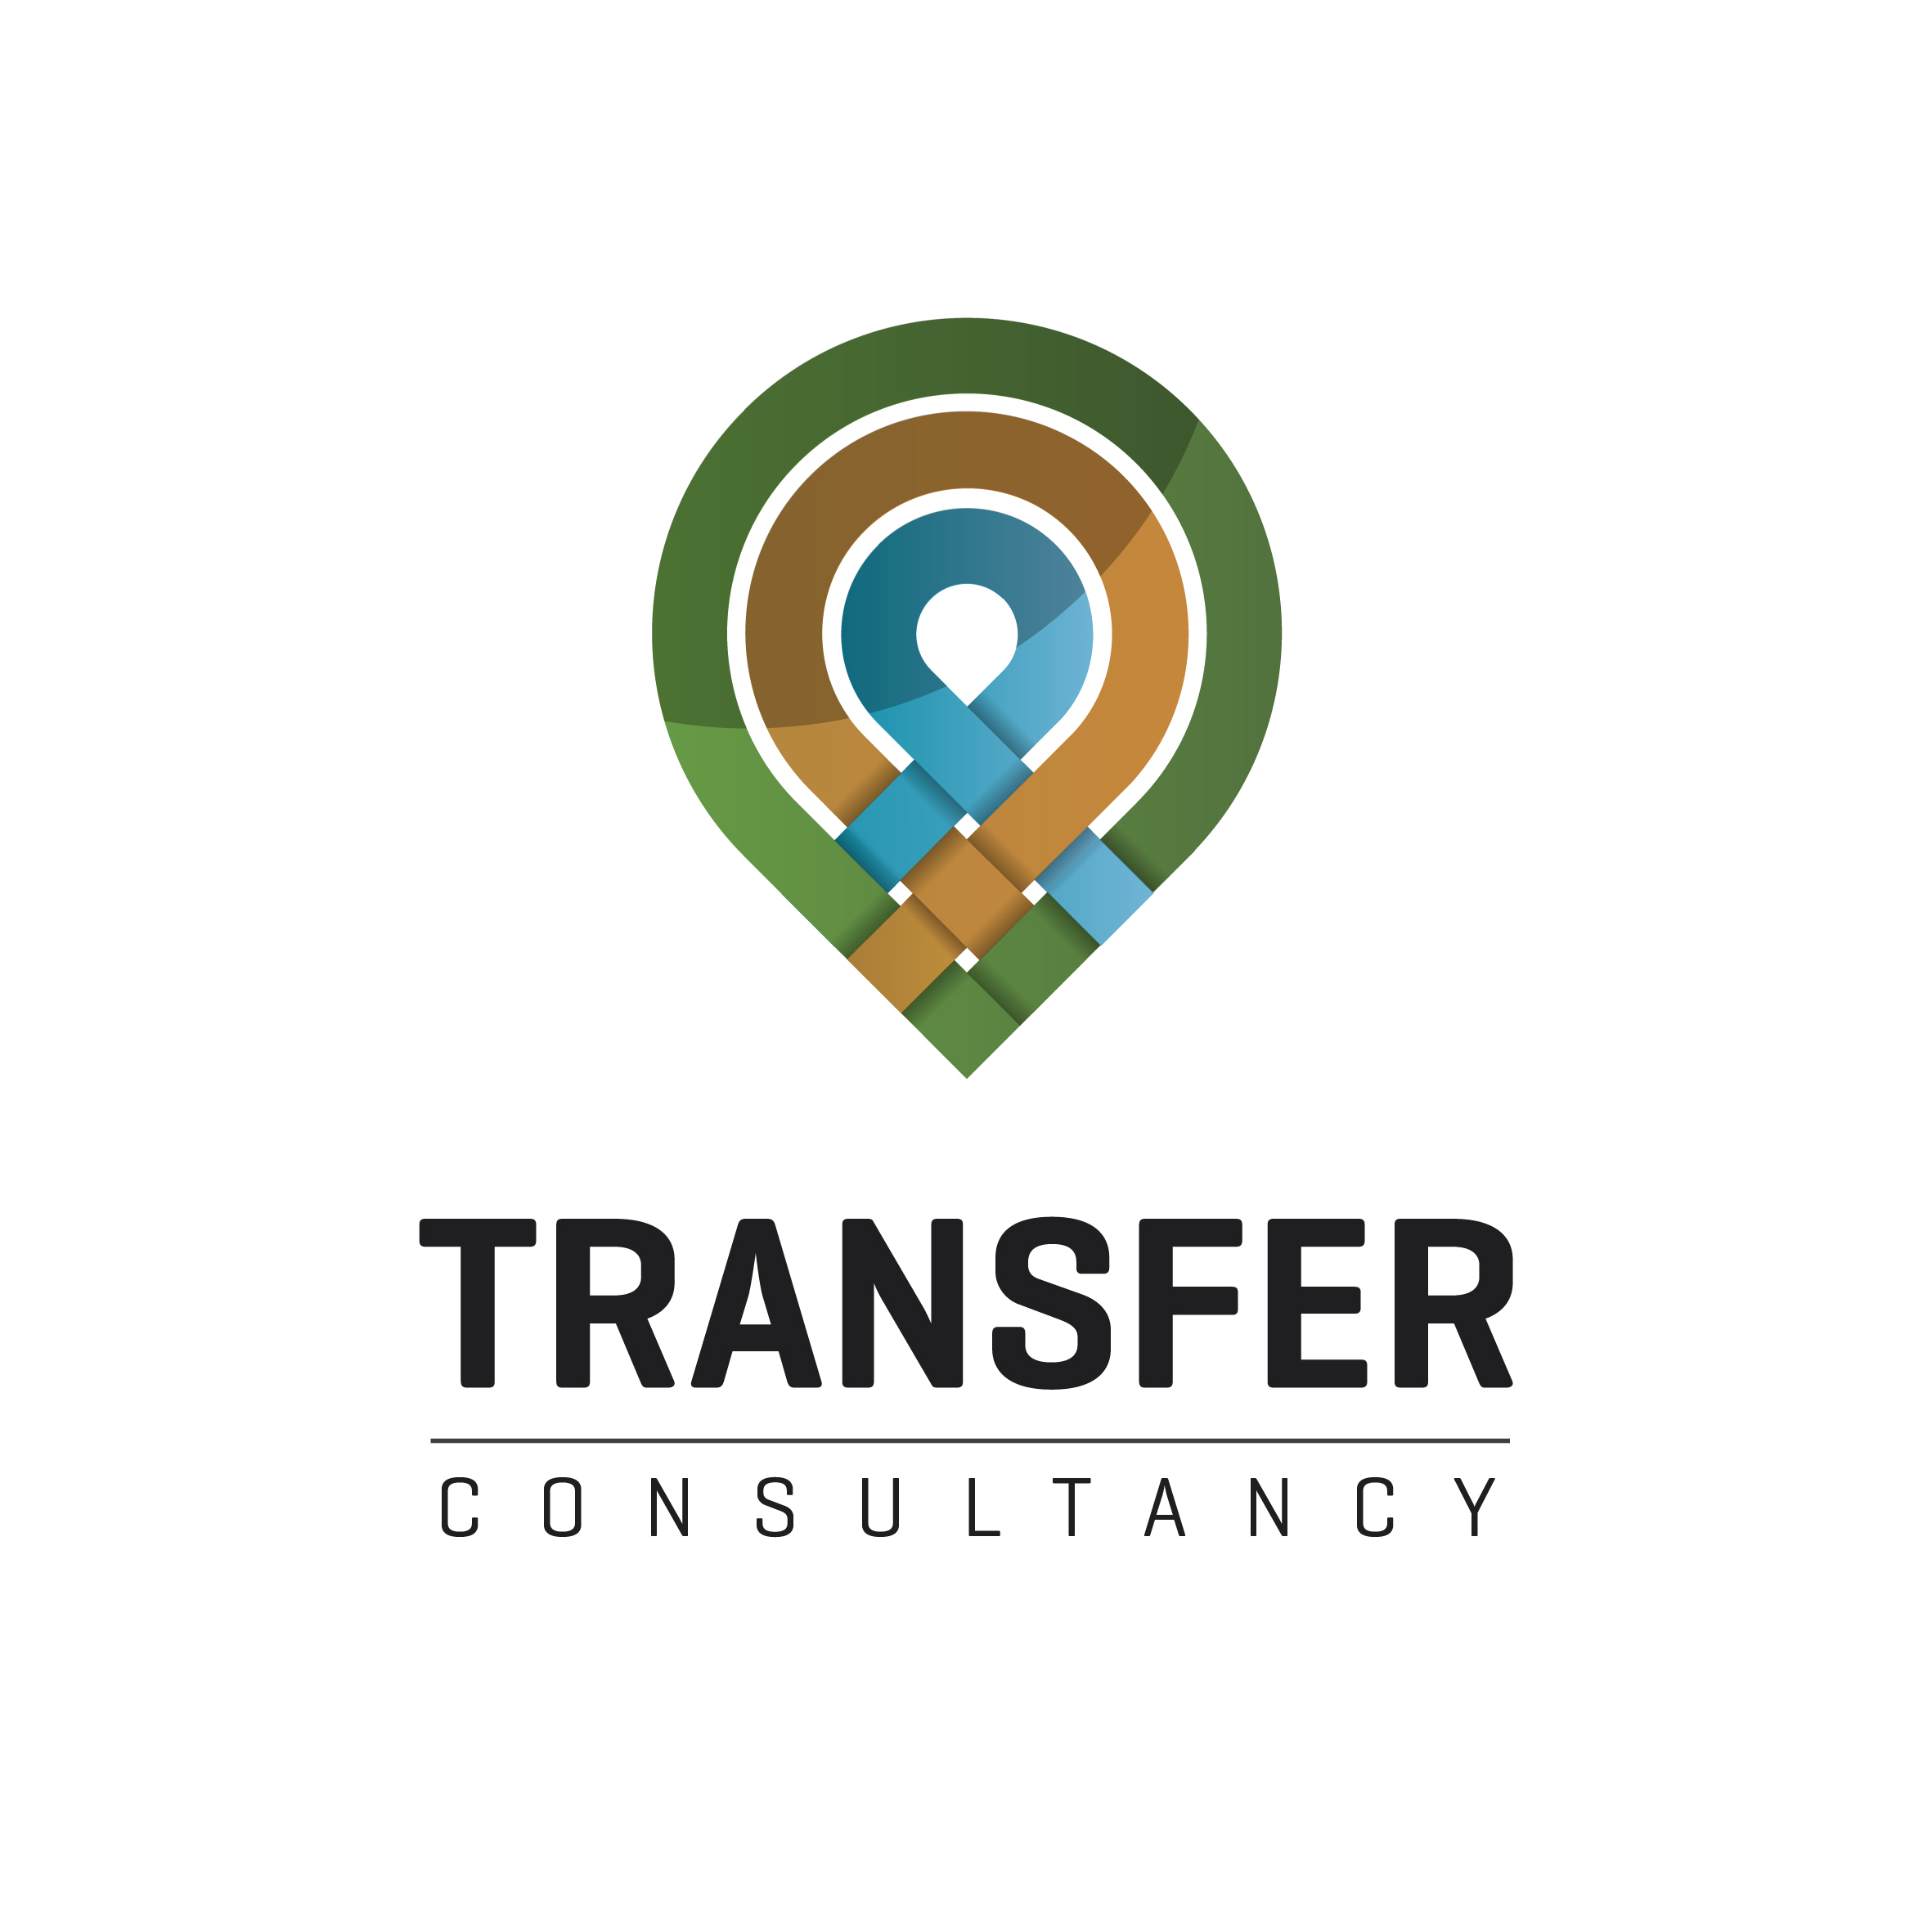 Transfer consultancy operaci n co2 for Viveros fuenteamarga